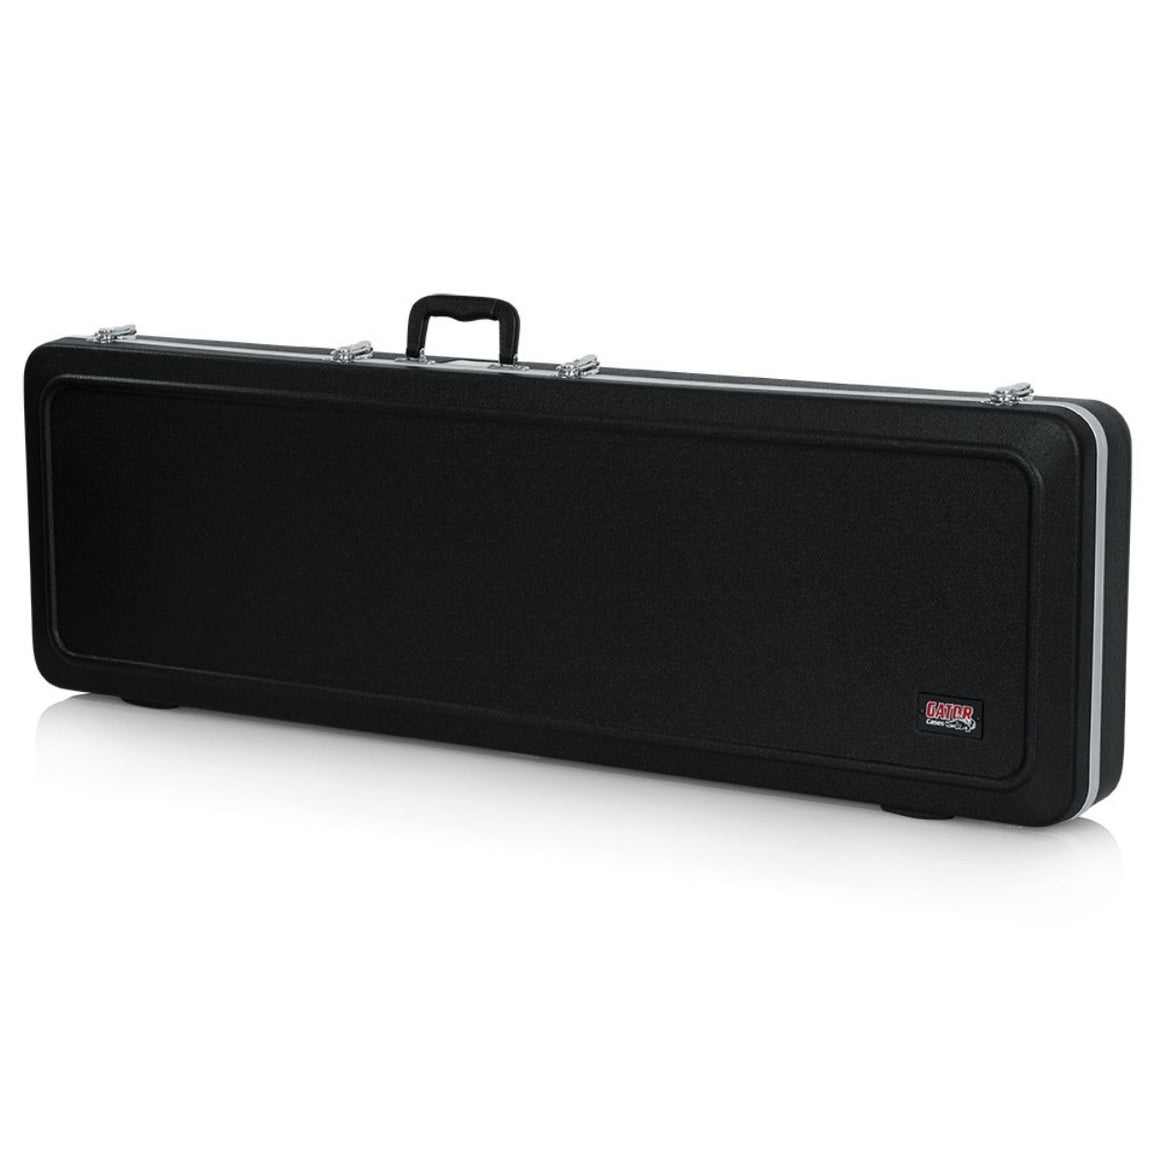 Gator GC-BASS ABS Molded Hard Case